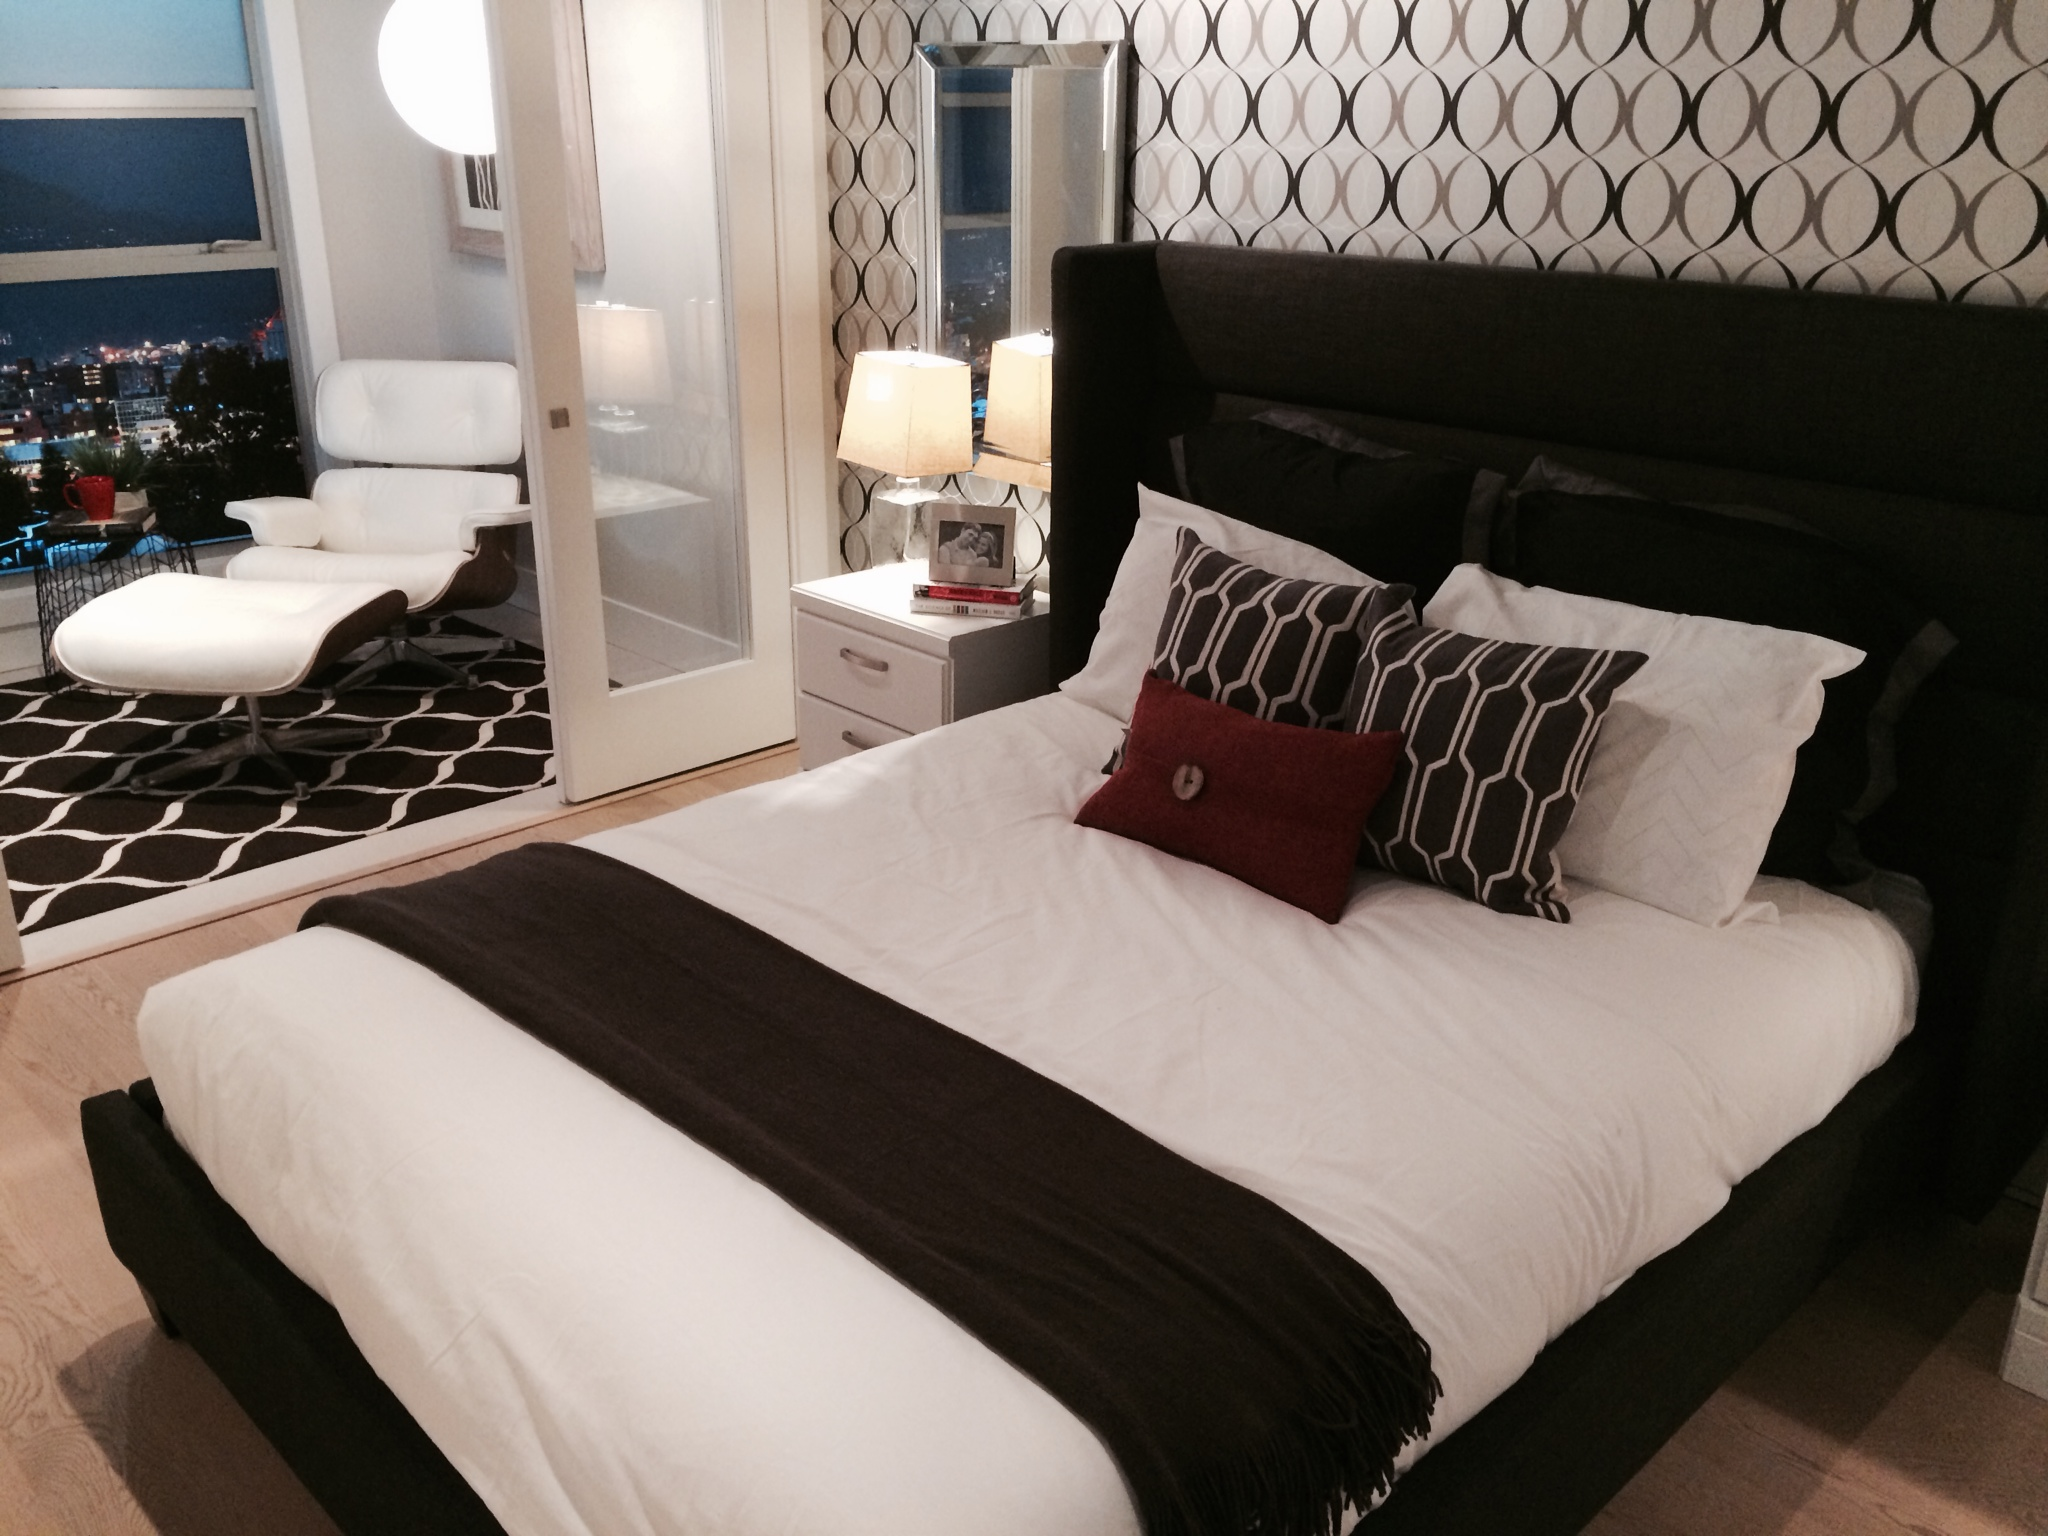 Midtown Vancouver Bedroom at Display Centre